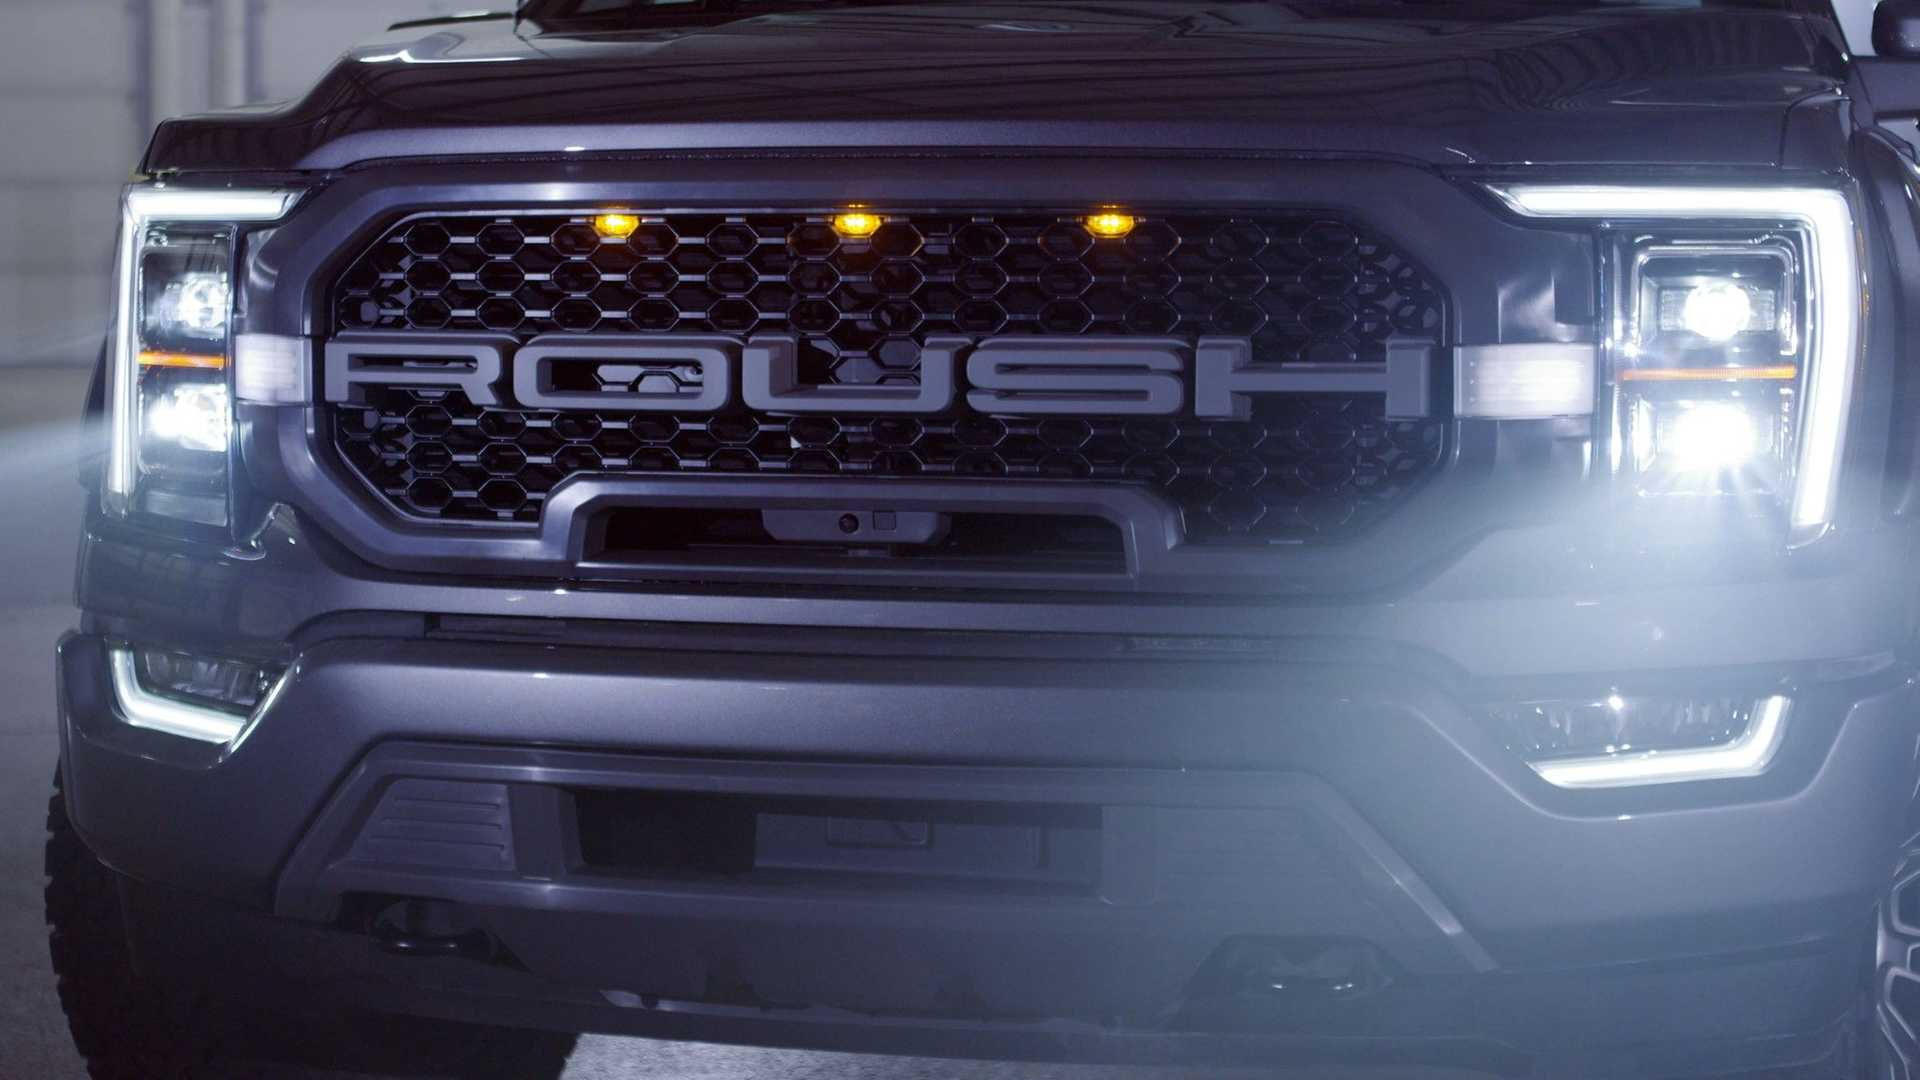 2021 Roush Ford F-150 grille